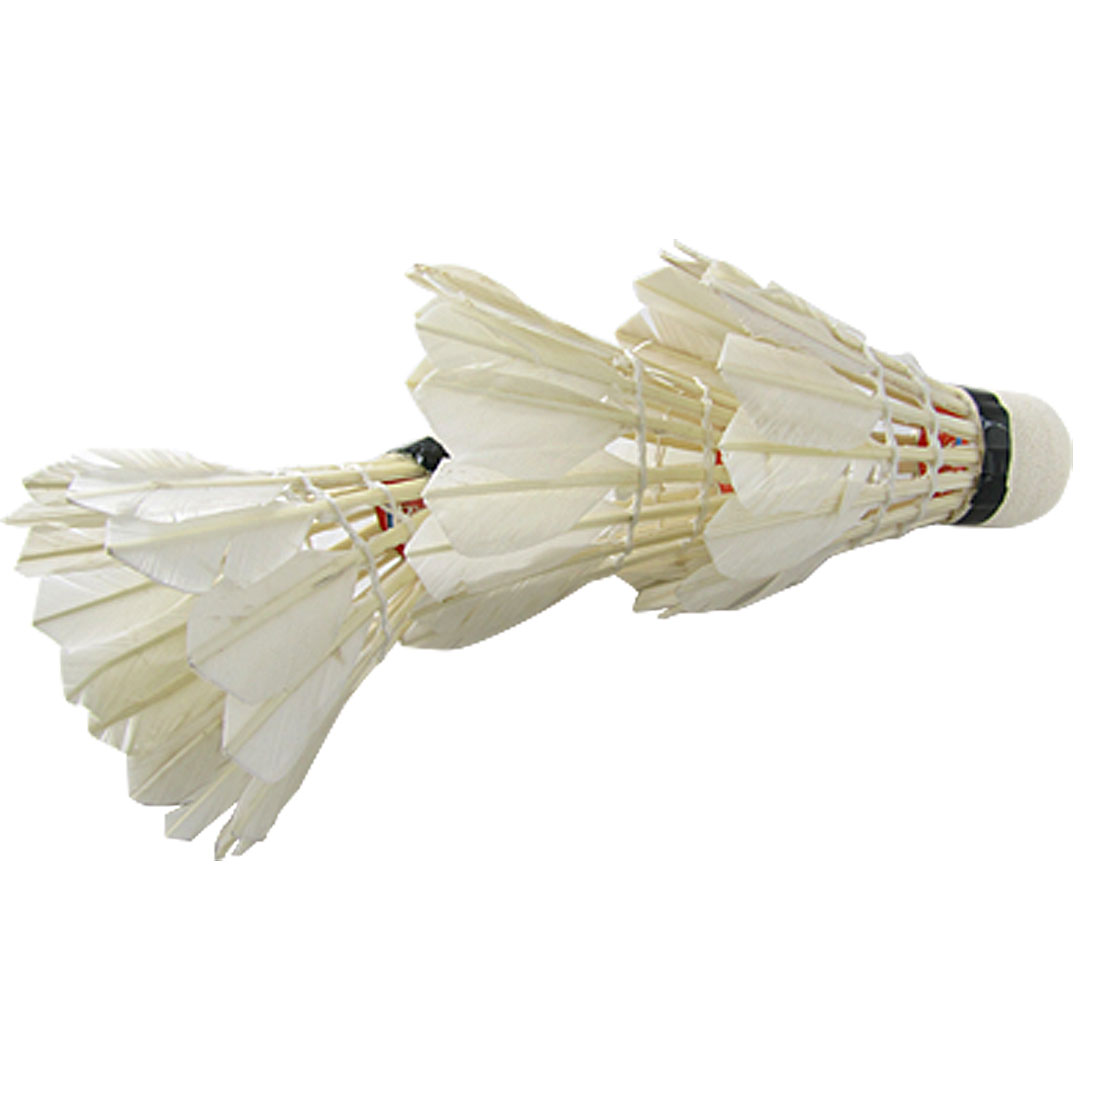 ELOS-White Goose Feather Badminton Shuttlecock 3pcs W Carboard Cylinder